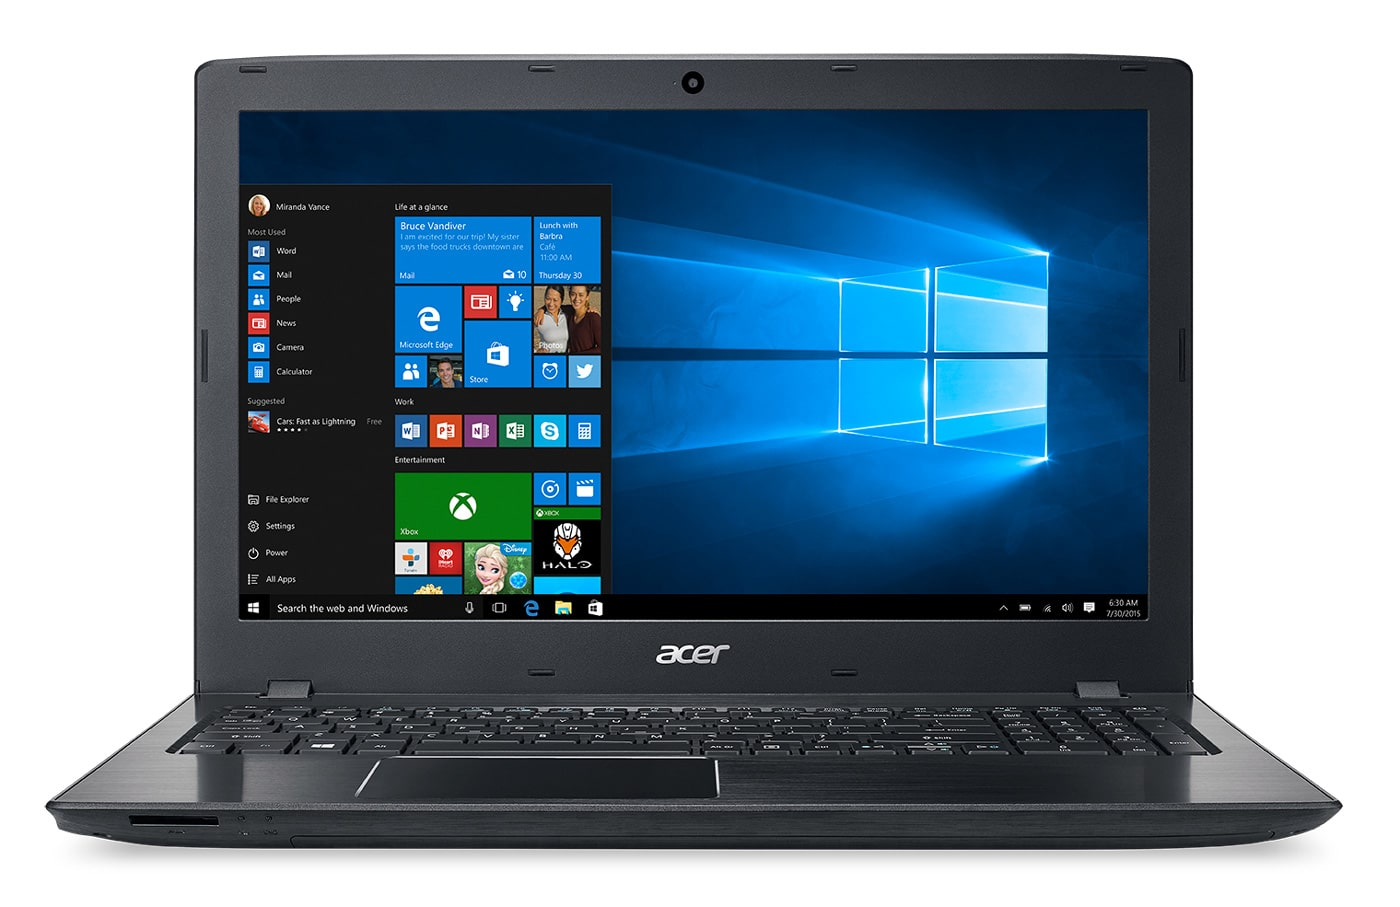 "<span class=""toptagtitre"">Promo 549€ ! </span>Acer E5-575G-578U, PC portable 15 pouces Full 940M SSD+HDD i5"